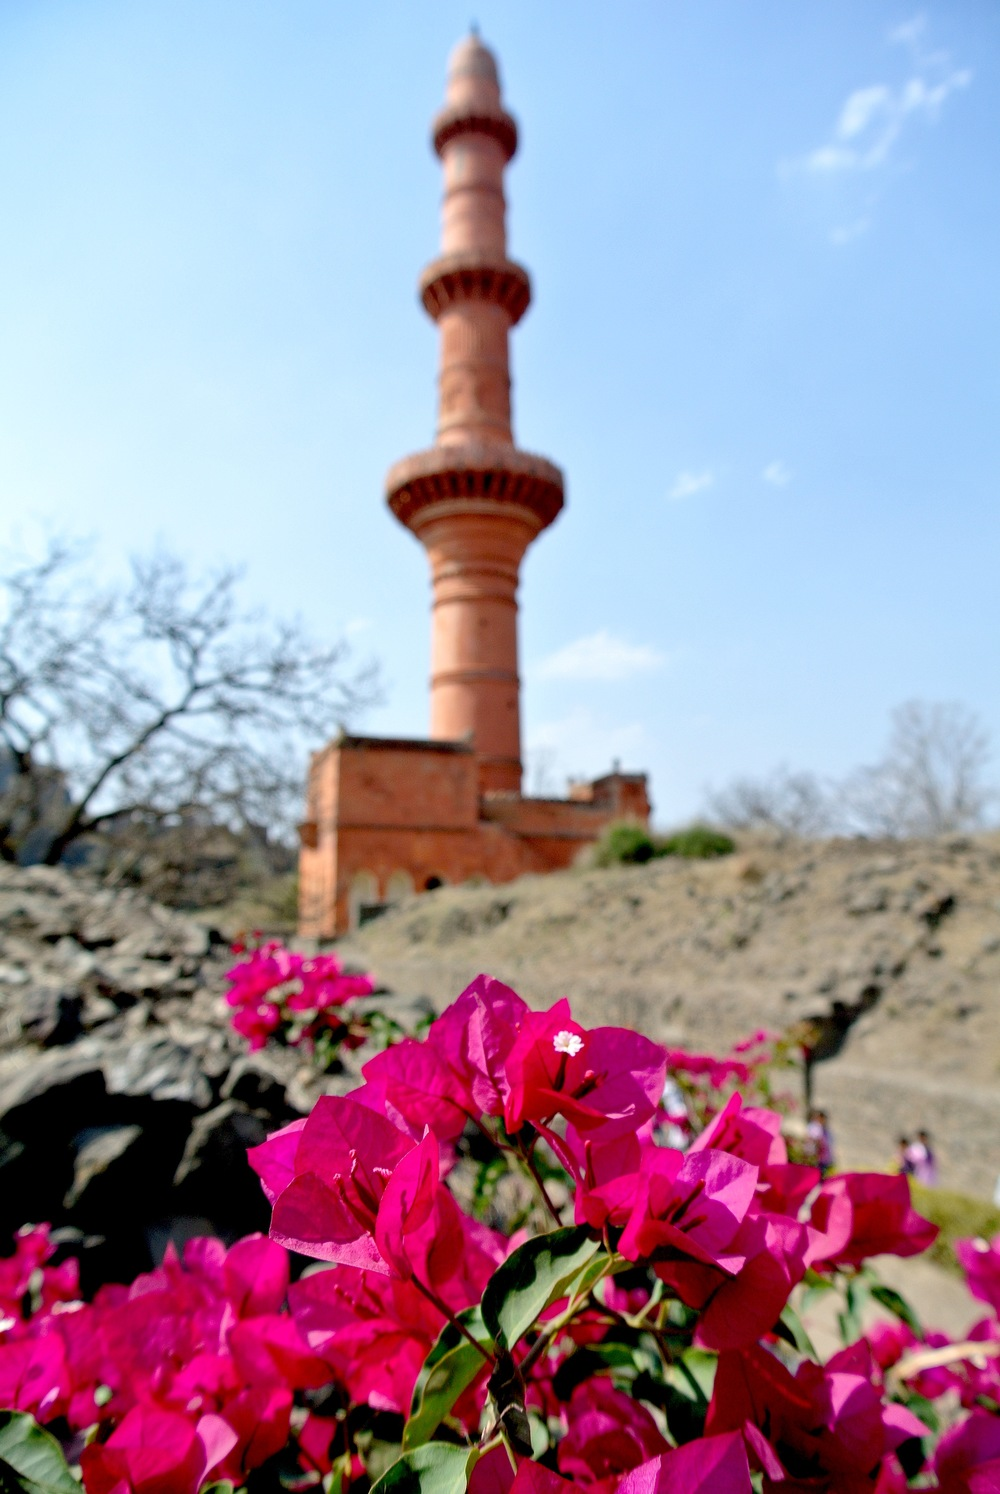 The Moon Tower at Daulatabad, the second tallest tower in India